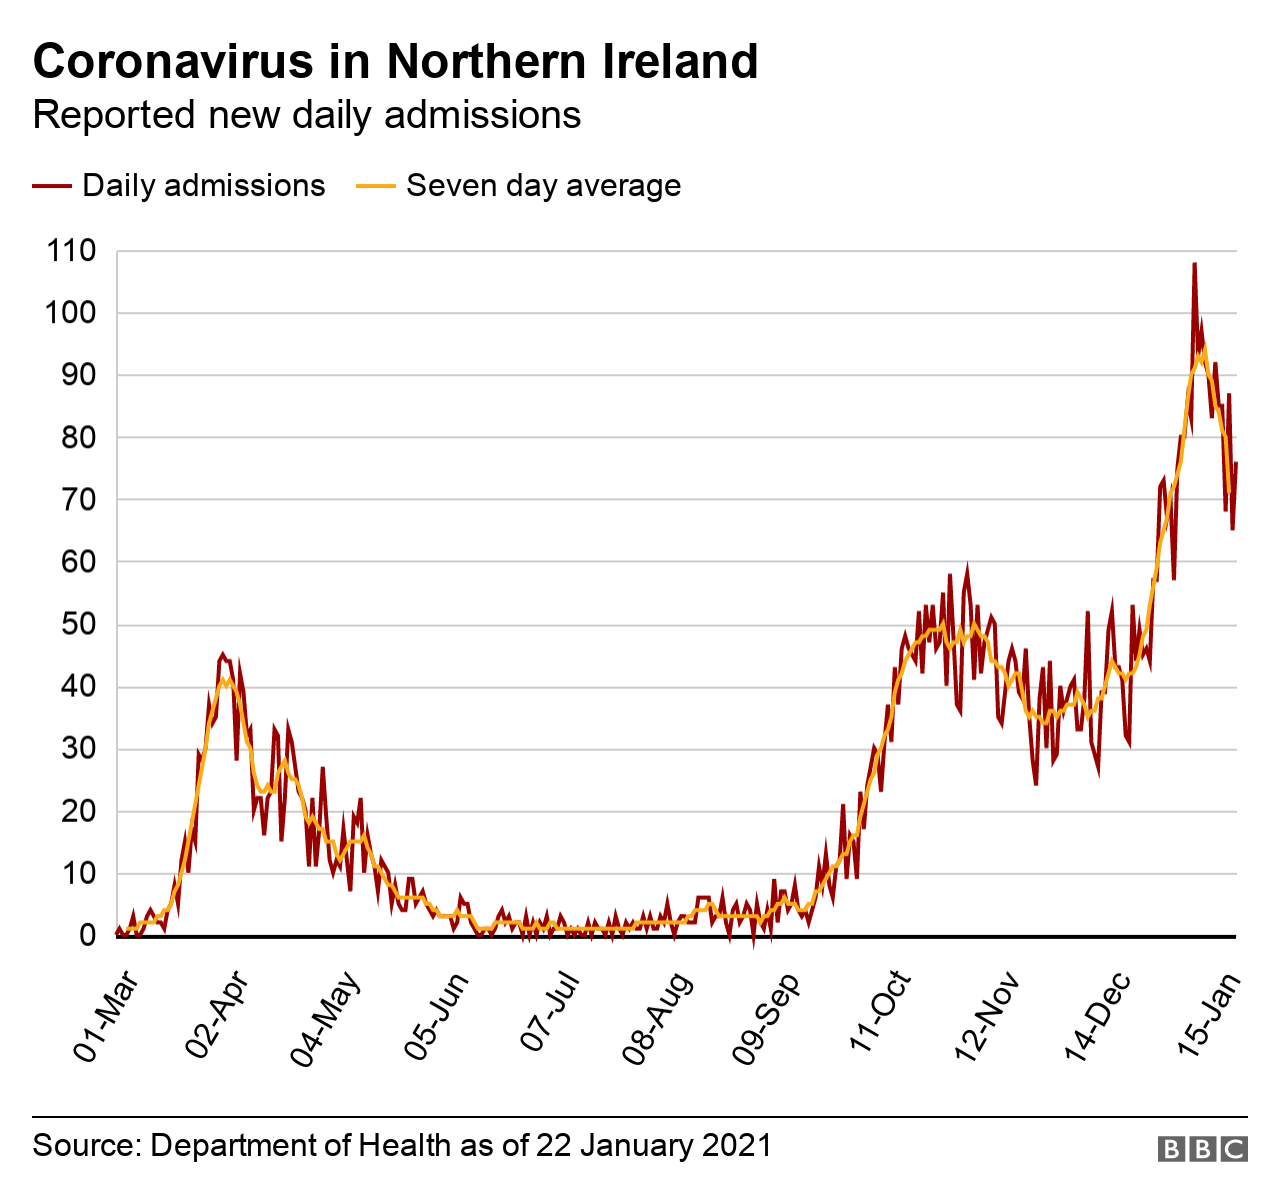 A graph showing the number of Covid-19-related hospital admissions in Northern Ireland